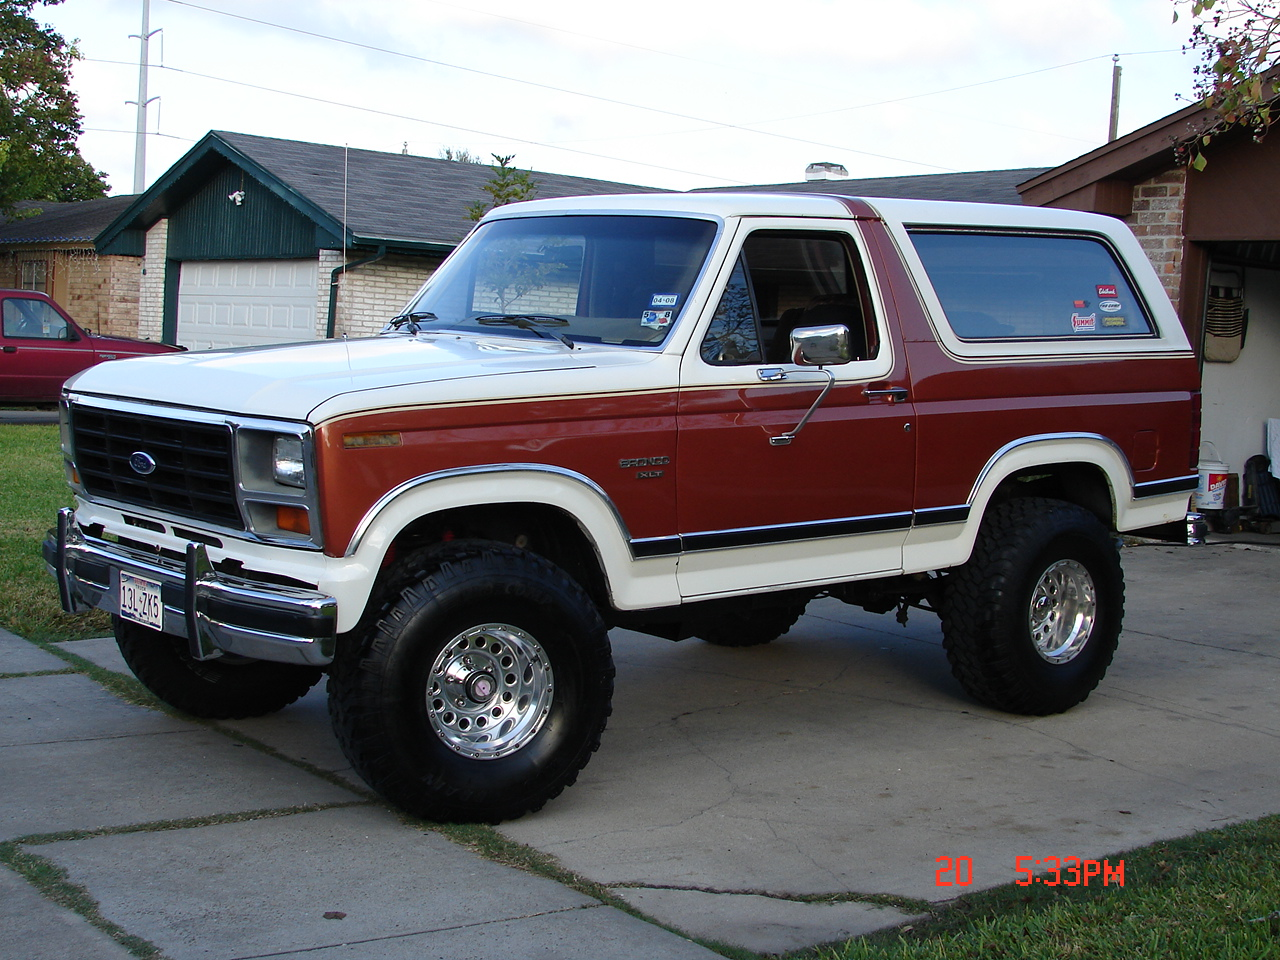 Ford bronco 1984 photo - 1